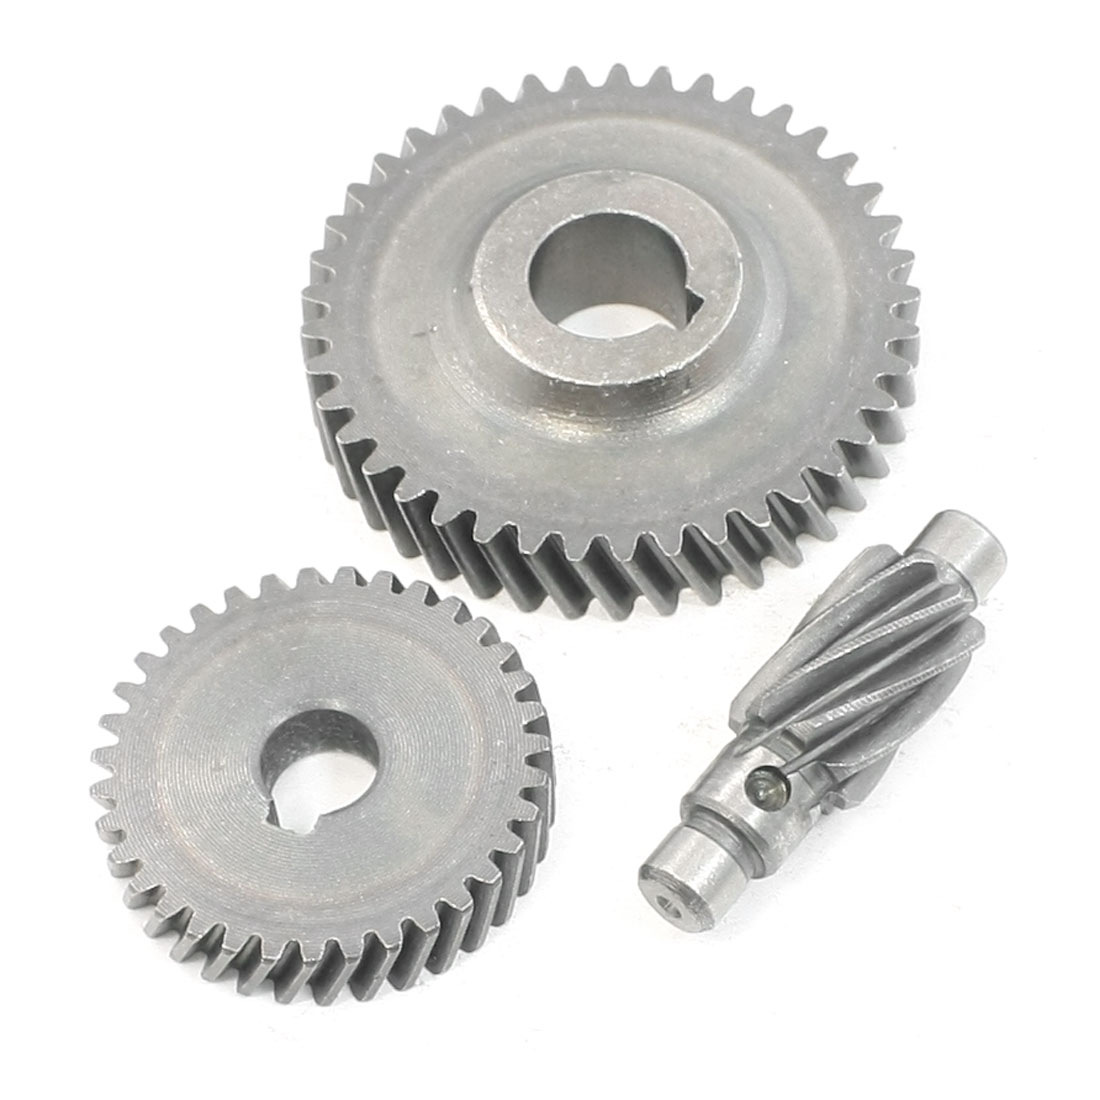 Electric Tool Part Spiral Helical Gear Set for Boda 16 Electric Drill